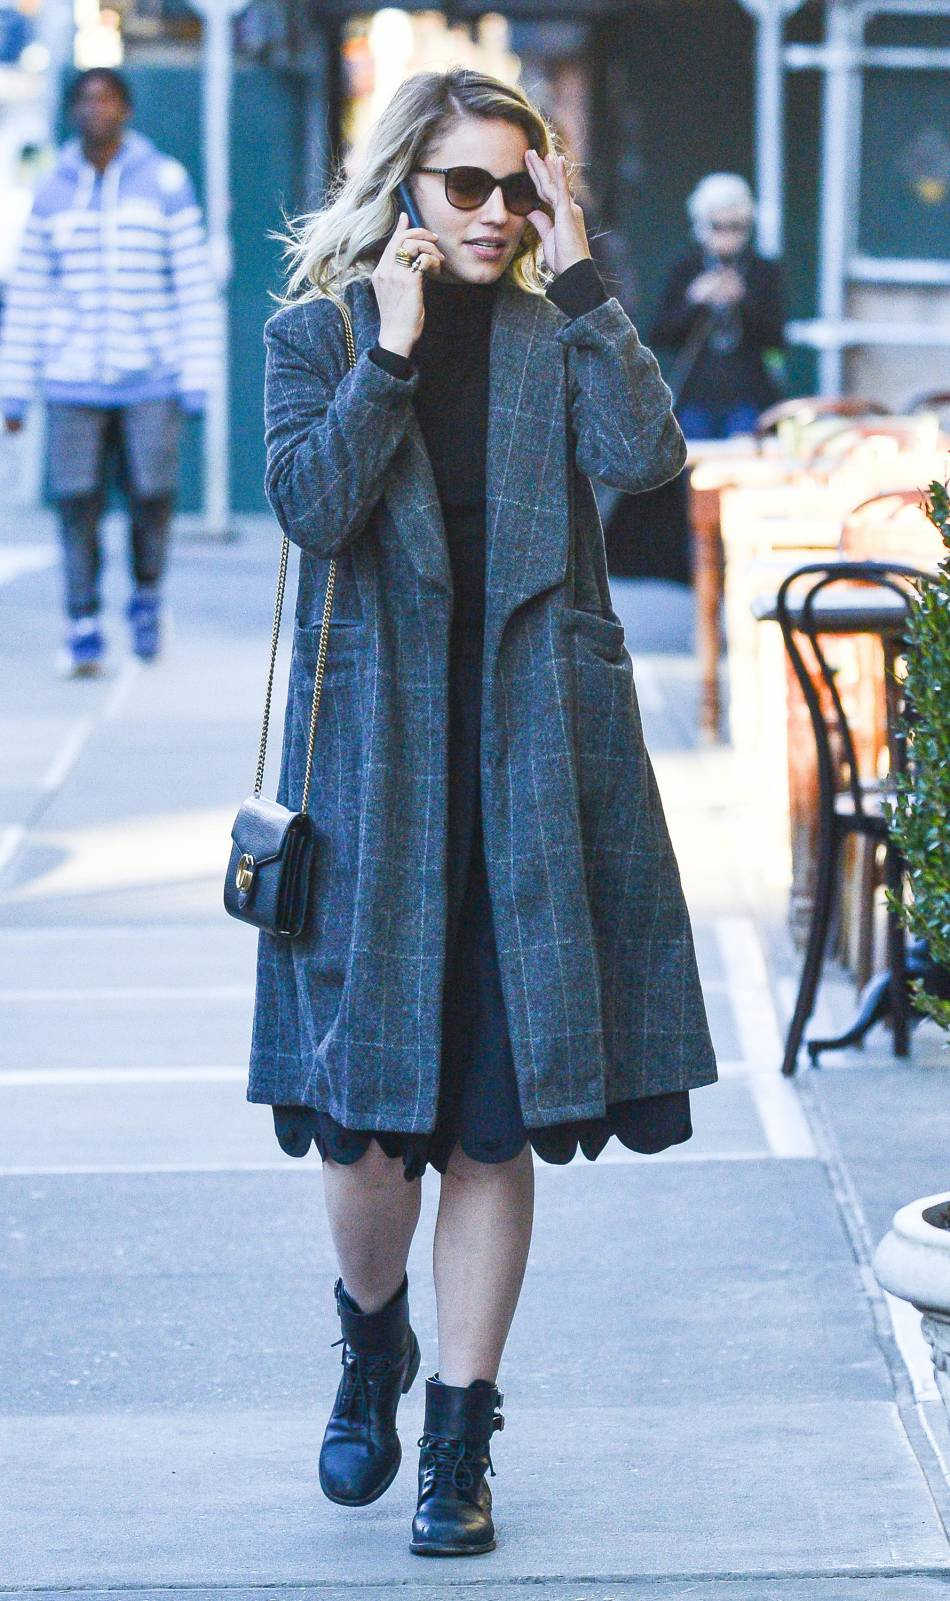 Dianna Agron en manteau à carreaux, le look à copier !